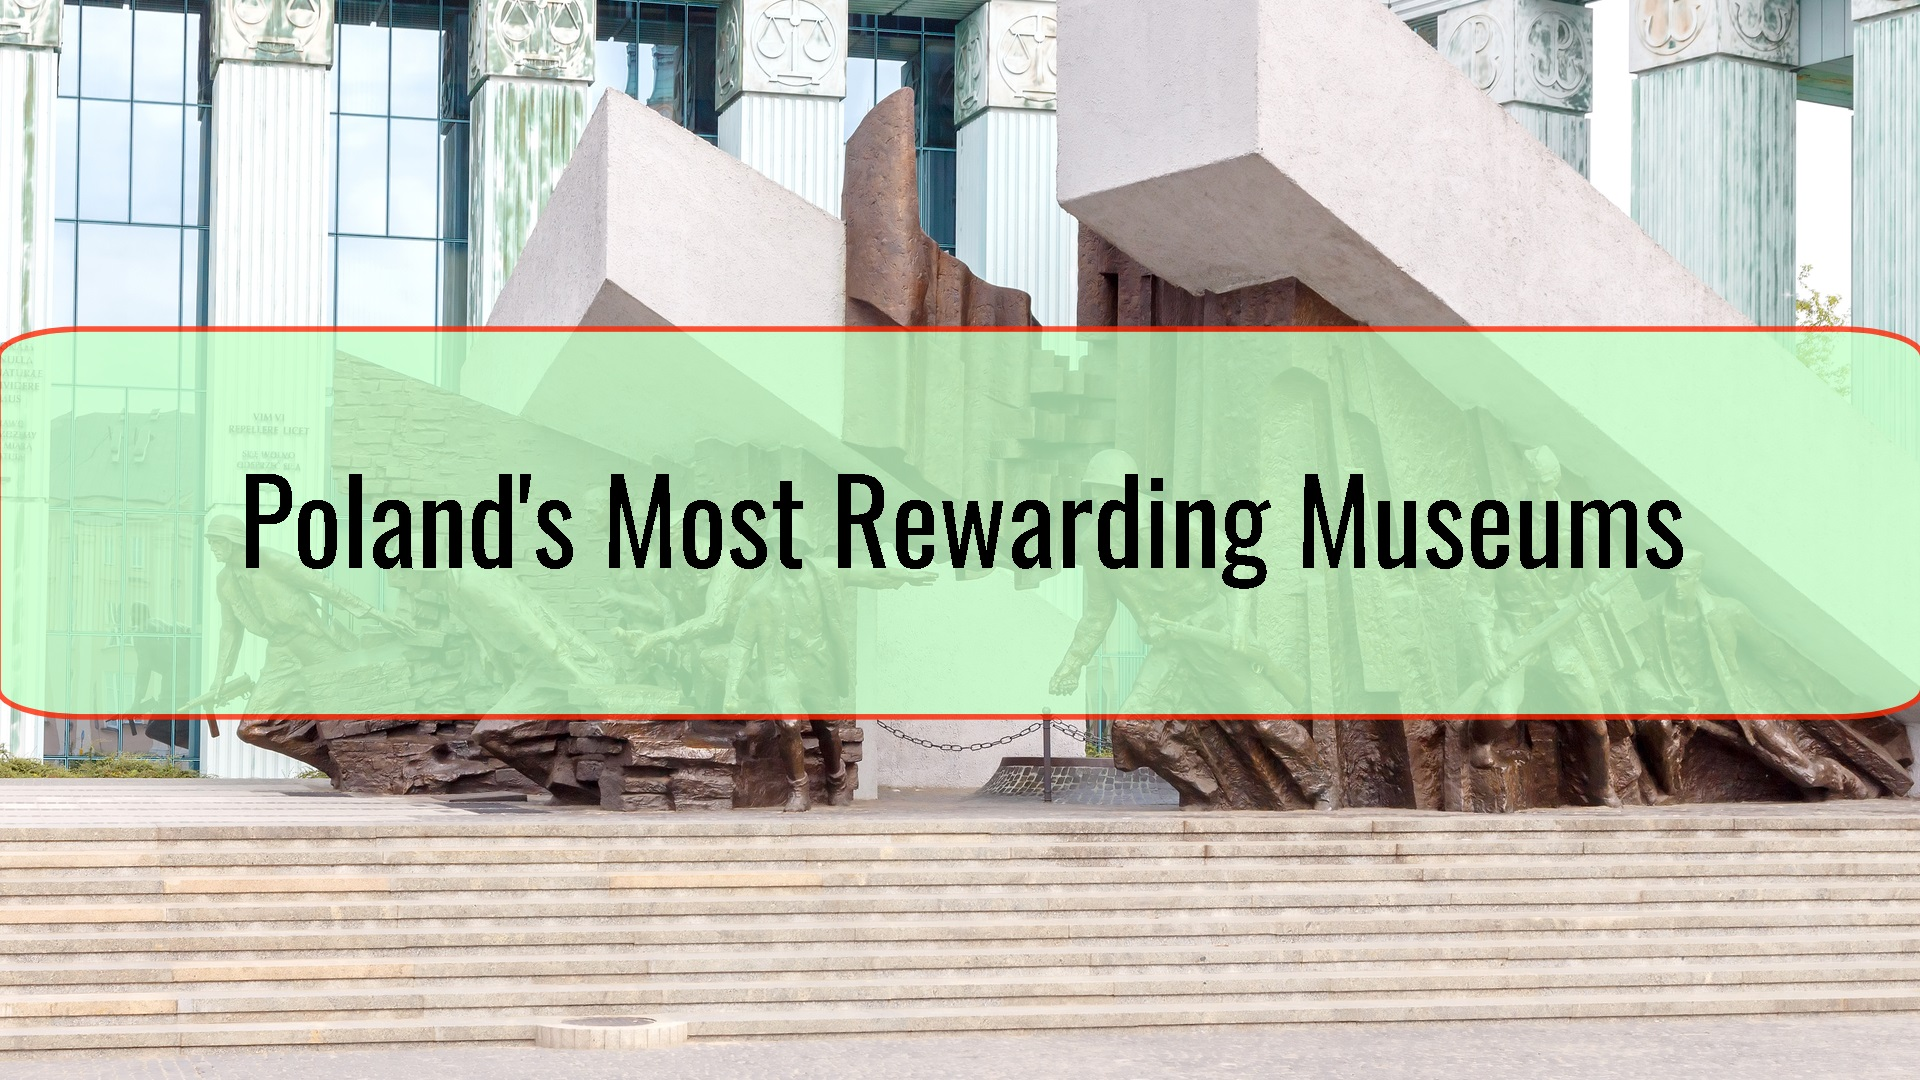 Poland's Most Rewarding Museums